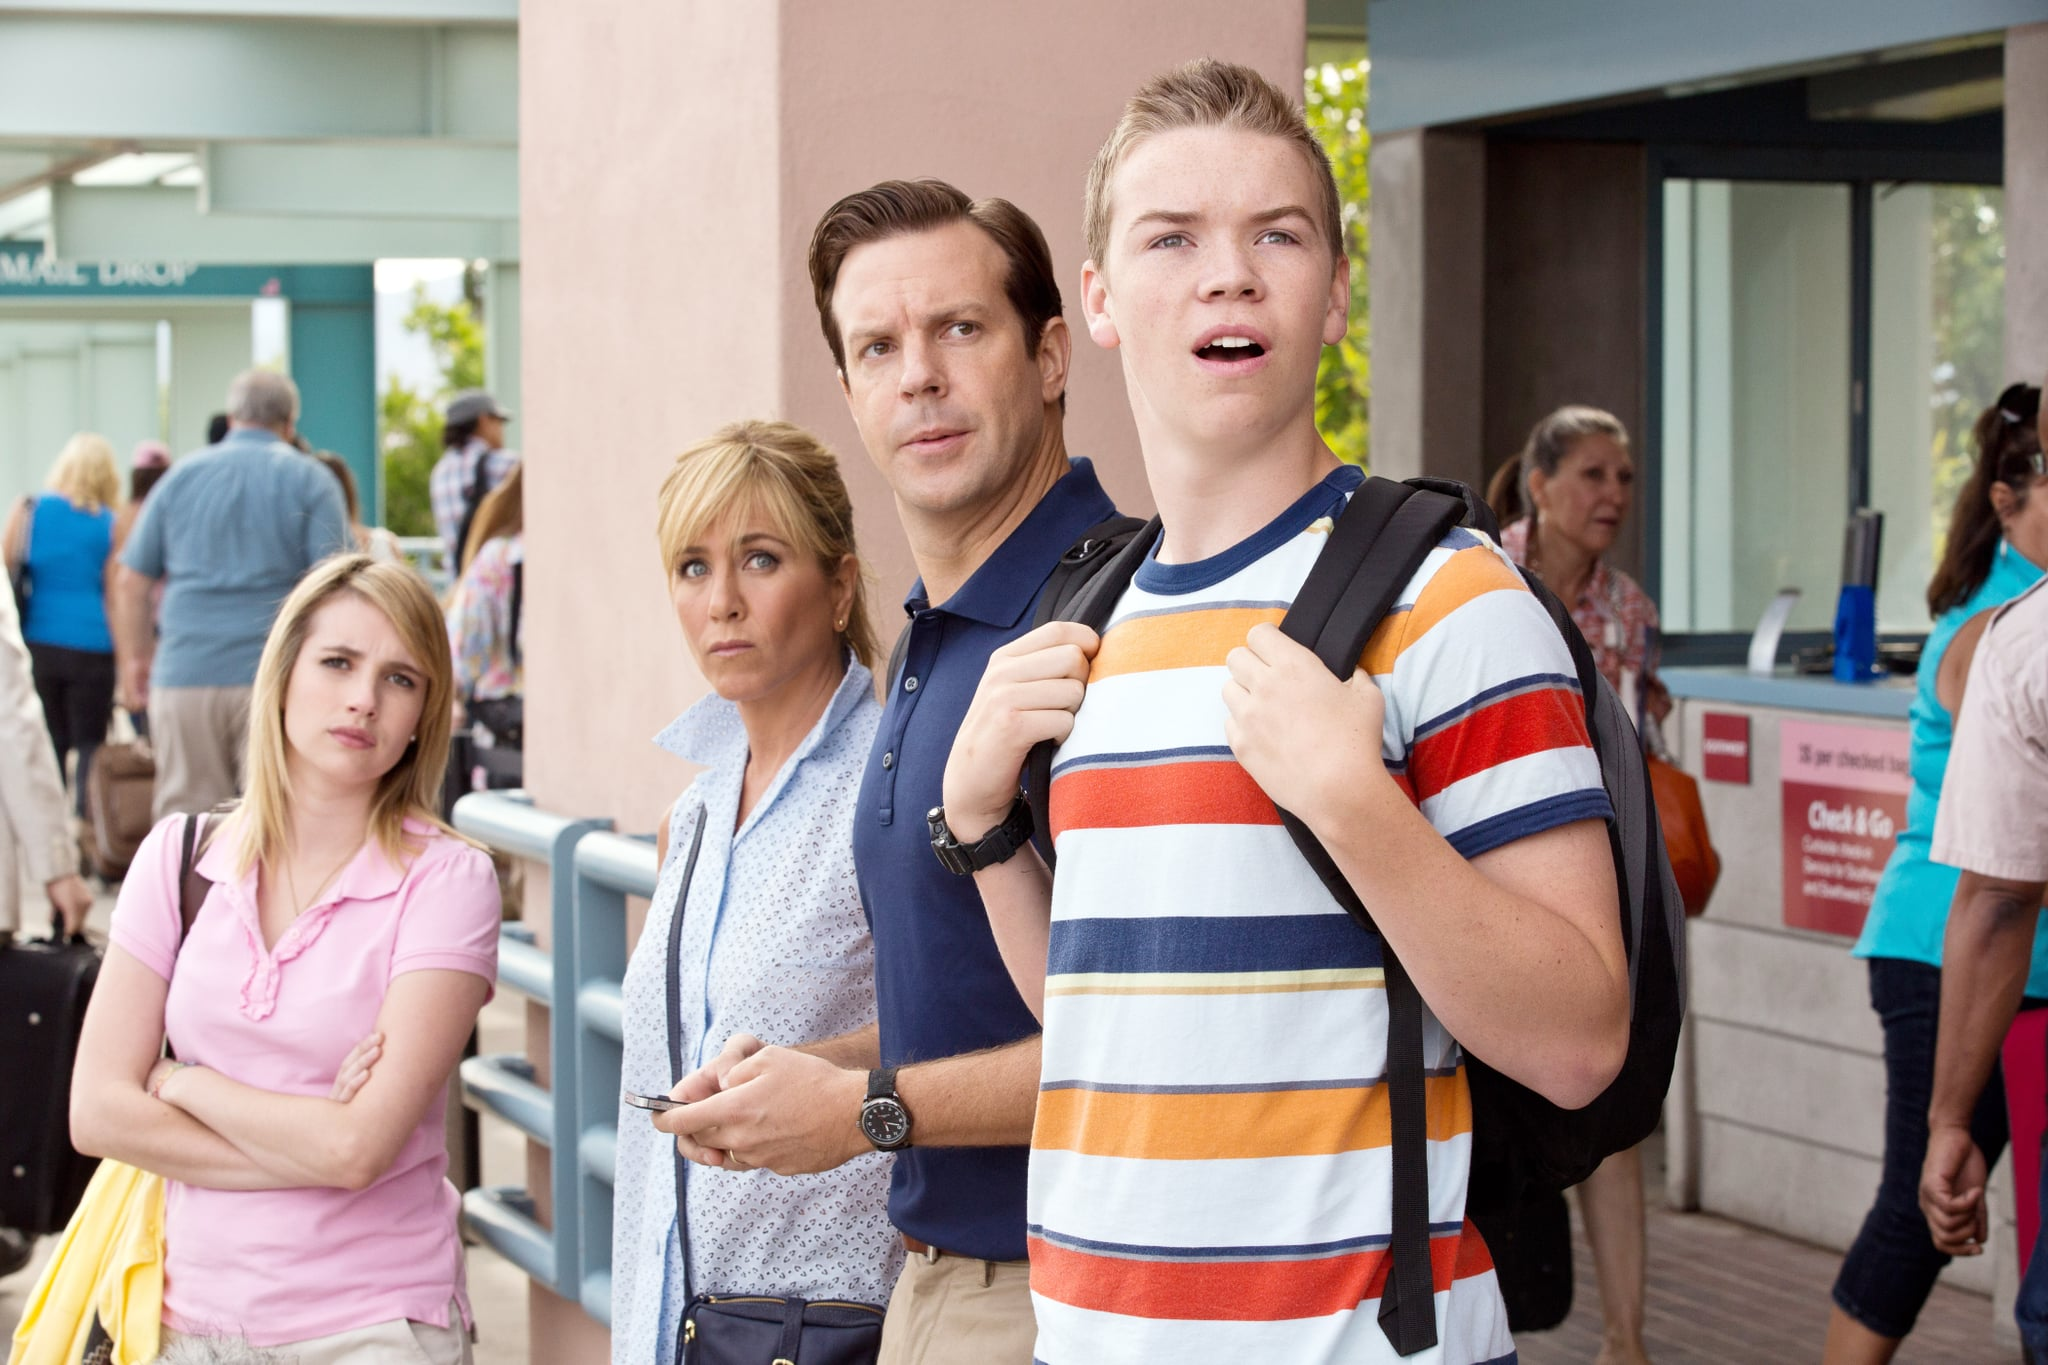 WE'RE THE MILLERS, l-r: Emma Roberts, Jennifer Aniston, Jason Sudeikis, Will Poulter, 2013, ph: Michael Tackett/Warner Bros. Pictures/courtesy Everett Collection